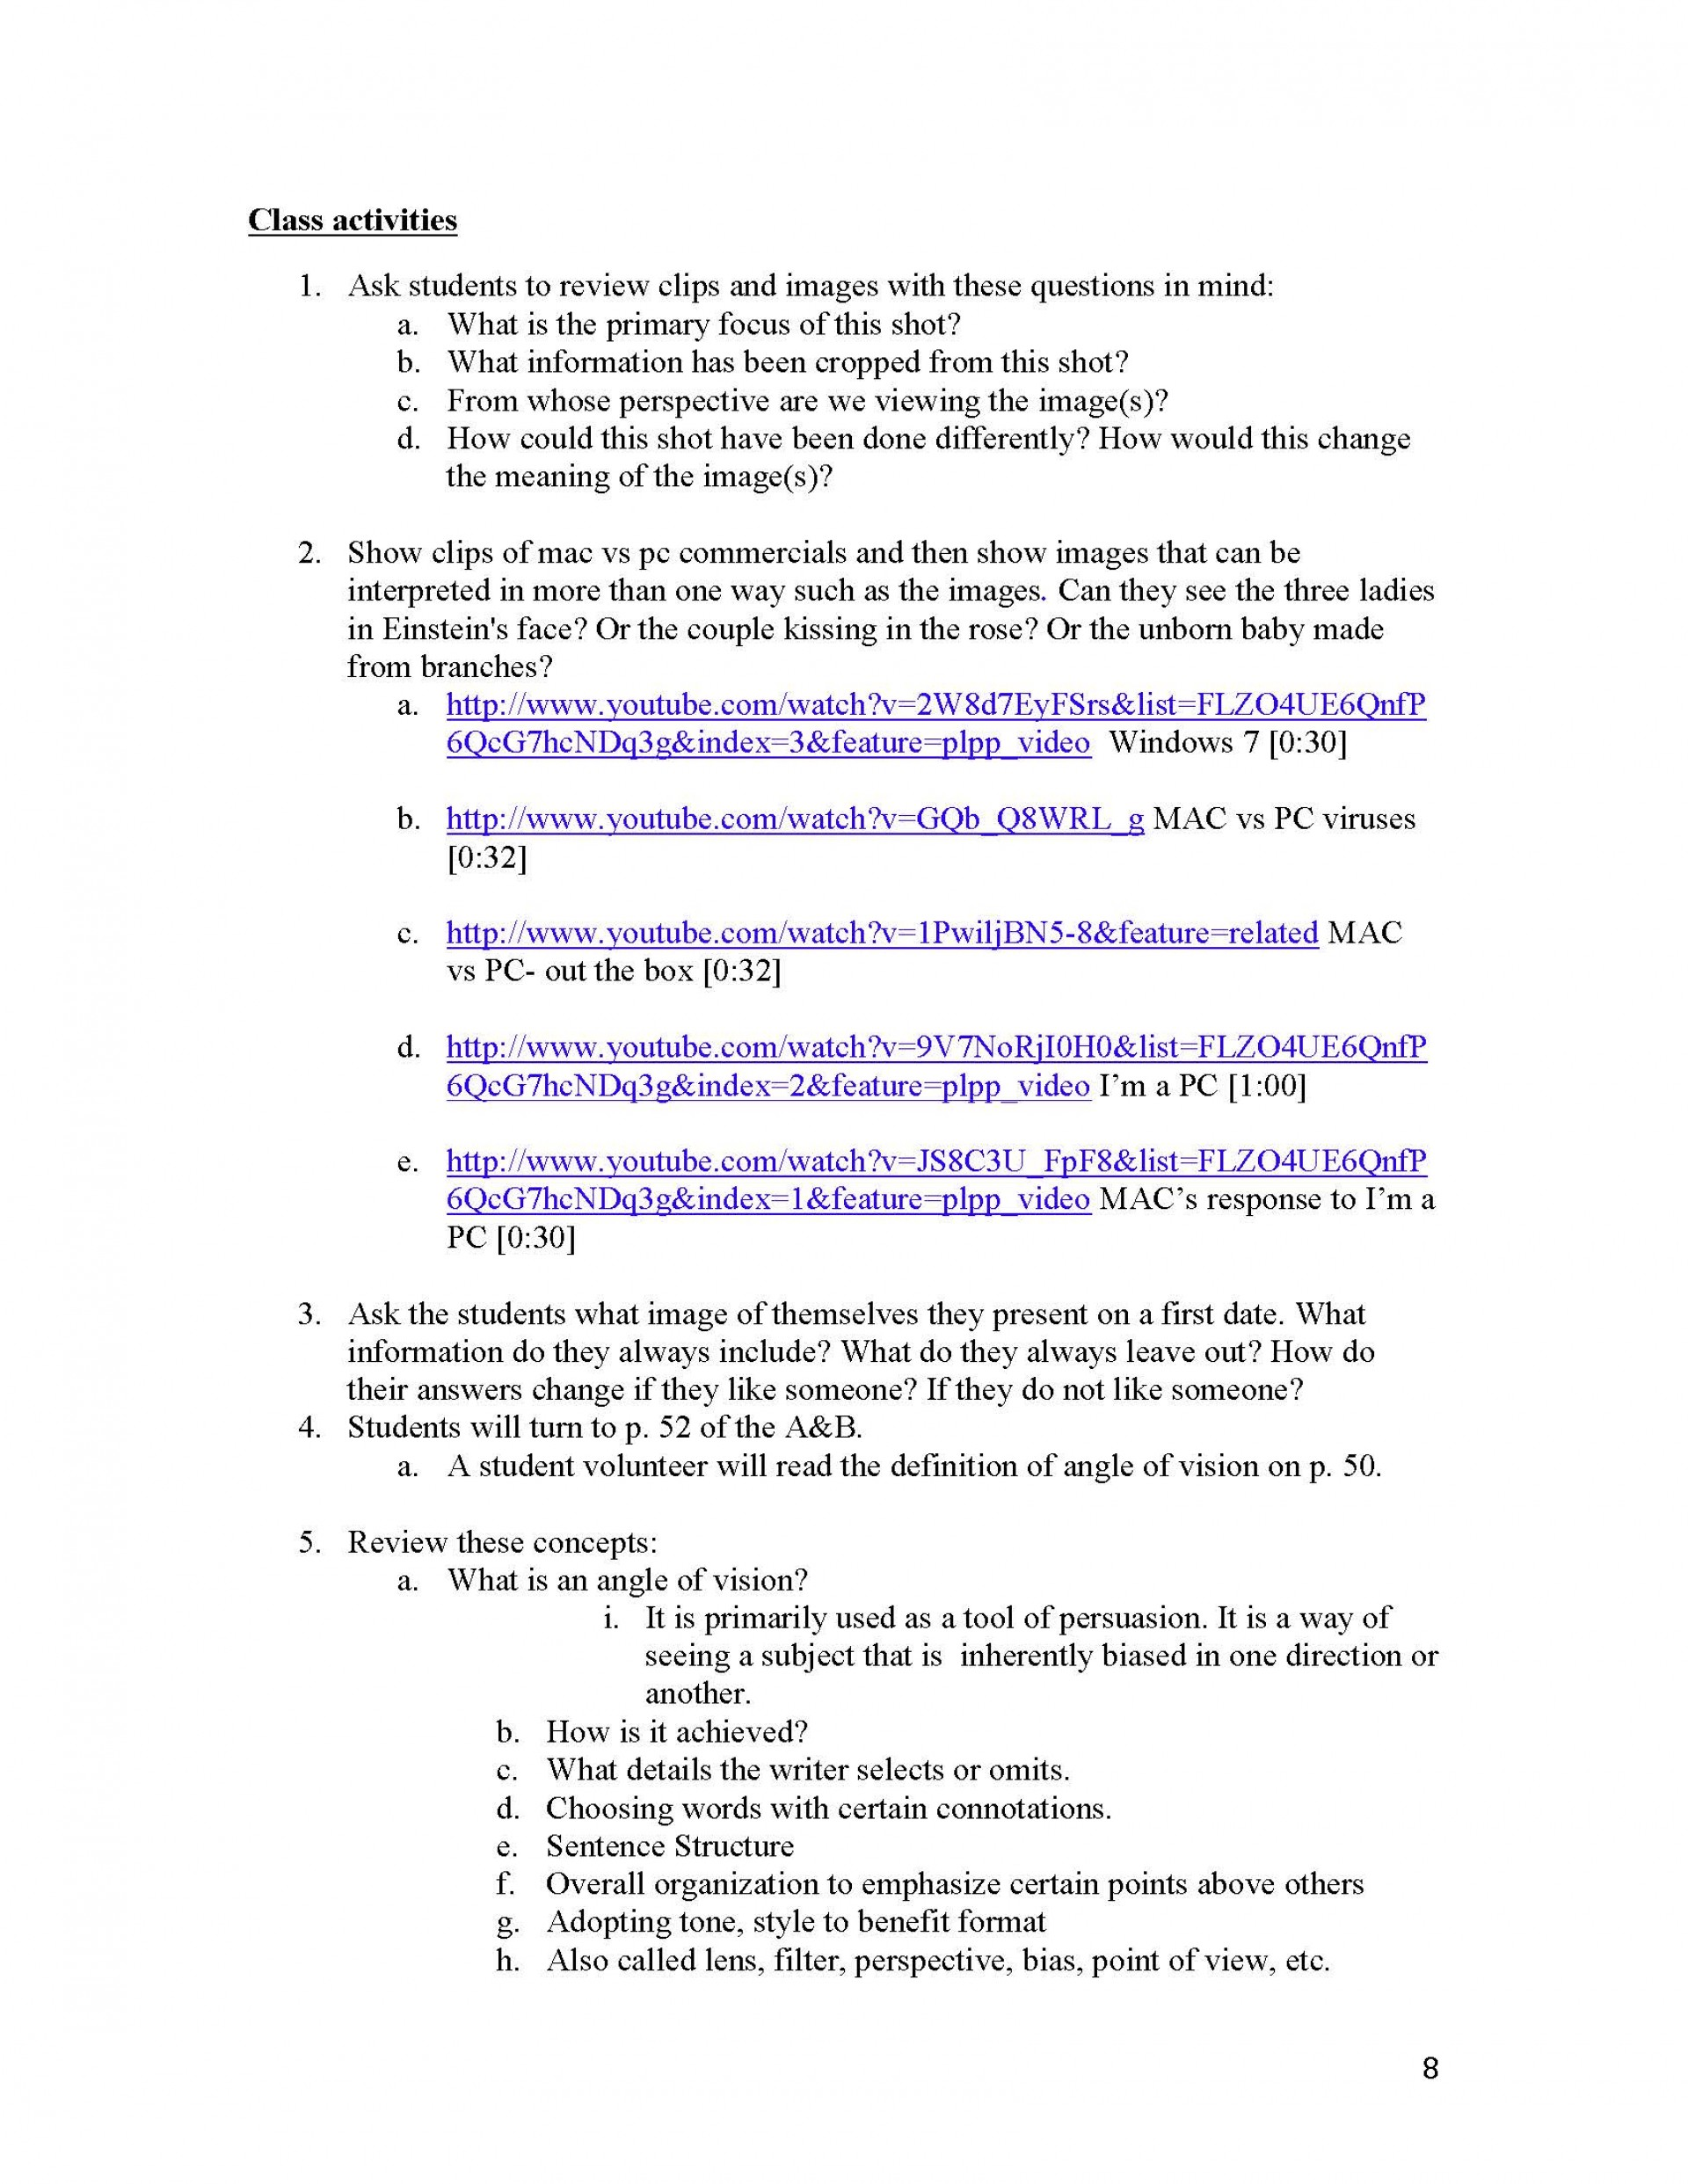 006 Essay Example Define Narrative Unit 1 Literacy Instructor Copy Page 08 Fascinating Definition Of Writing Personal Narrative/descriptive 1920